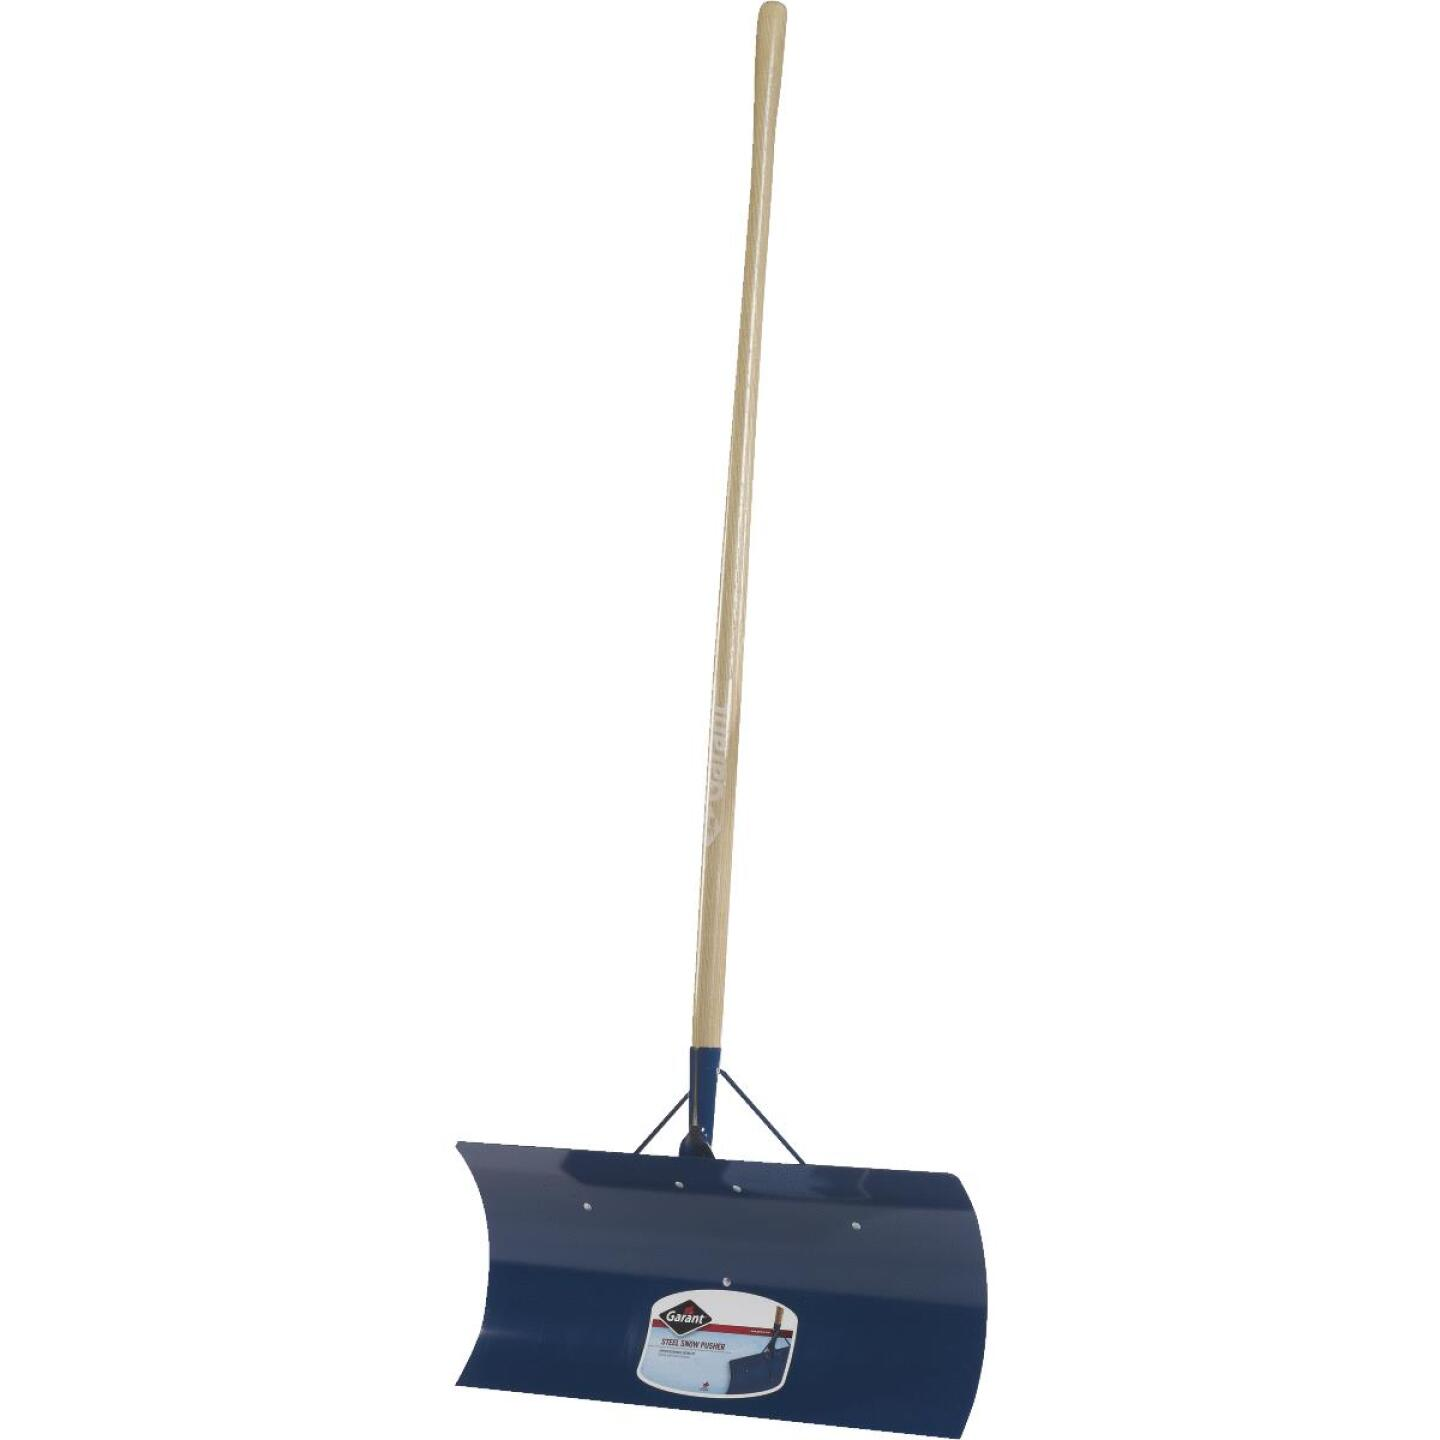 Garant Yukon 24 In. Steel Snow Pusher with 48 In. Wood Handle Image 1